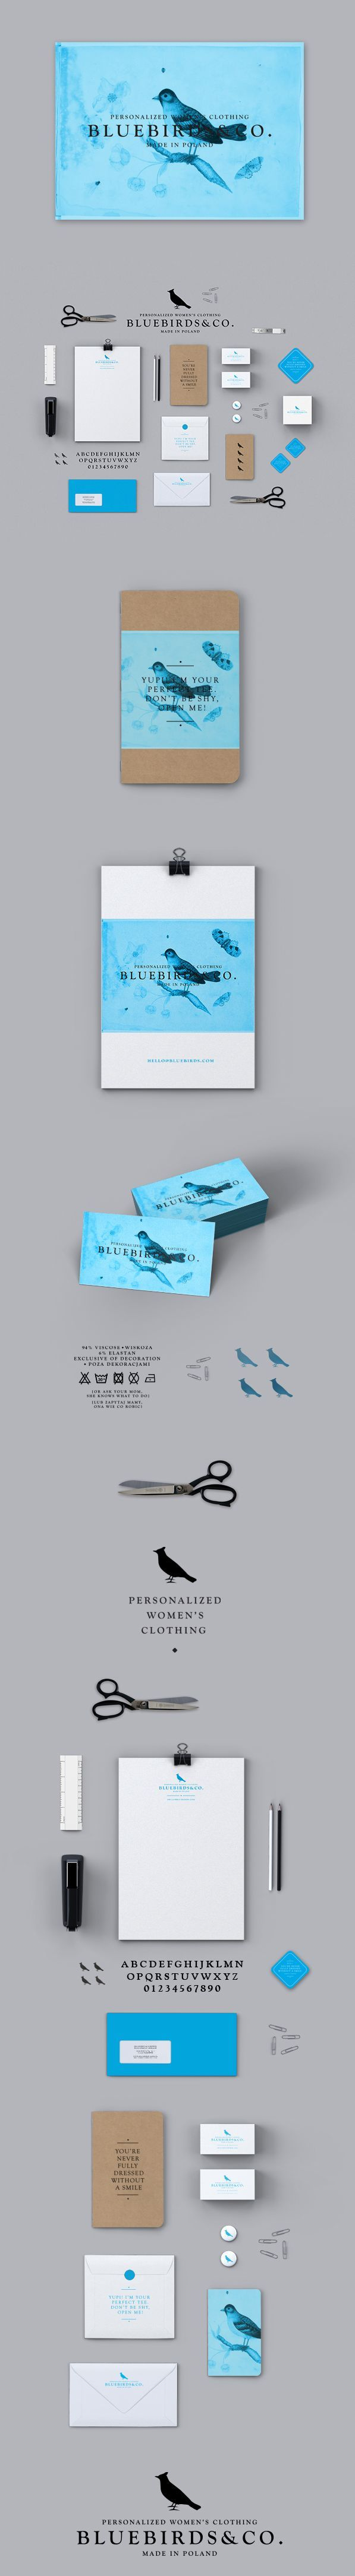 Strong, eye-catching color palette for this brand identity for Bluebirds & Co